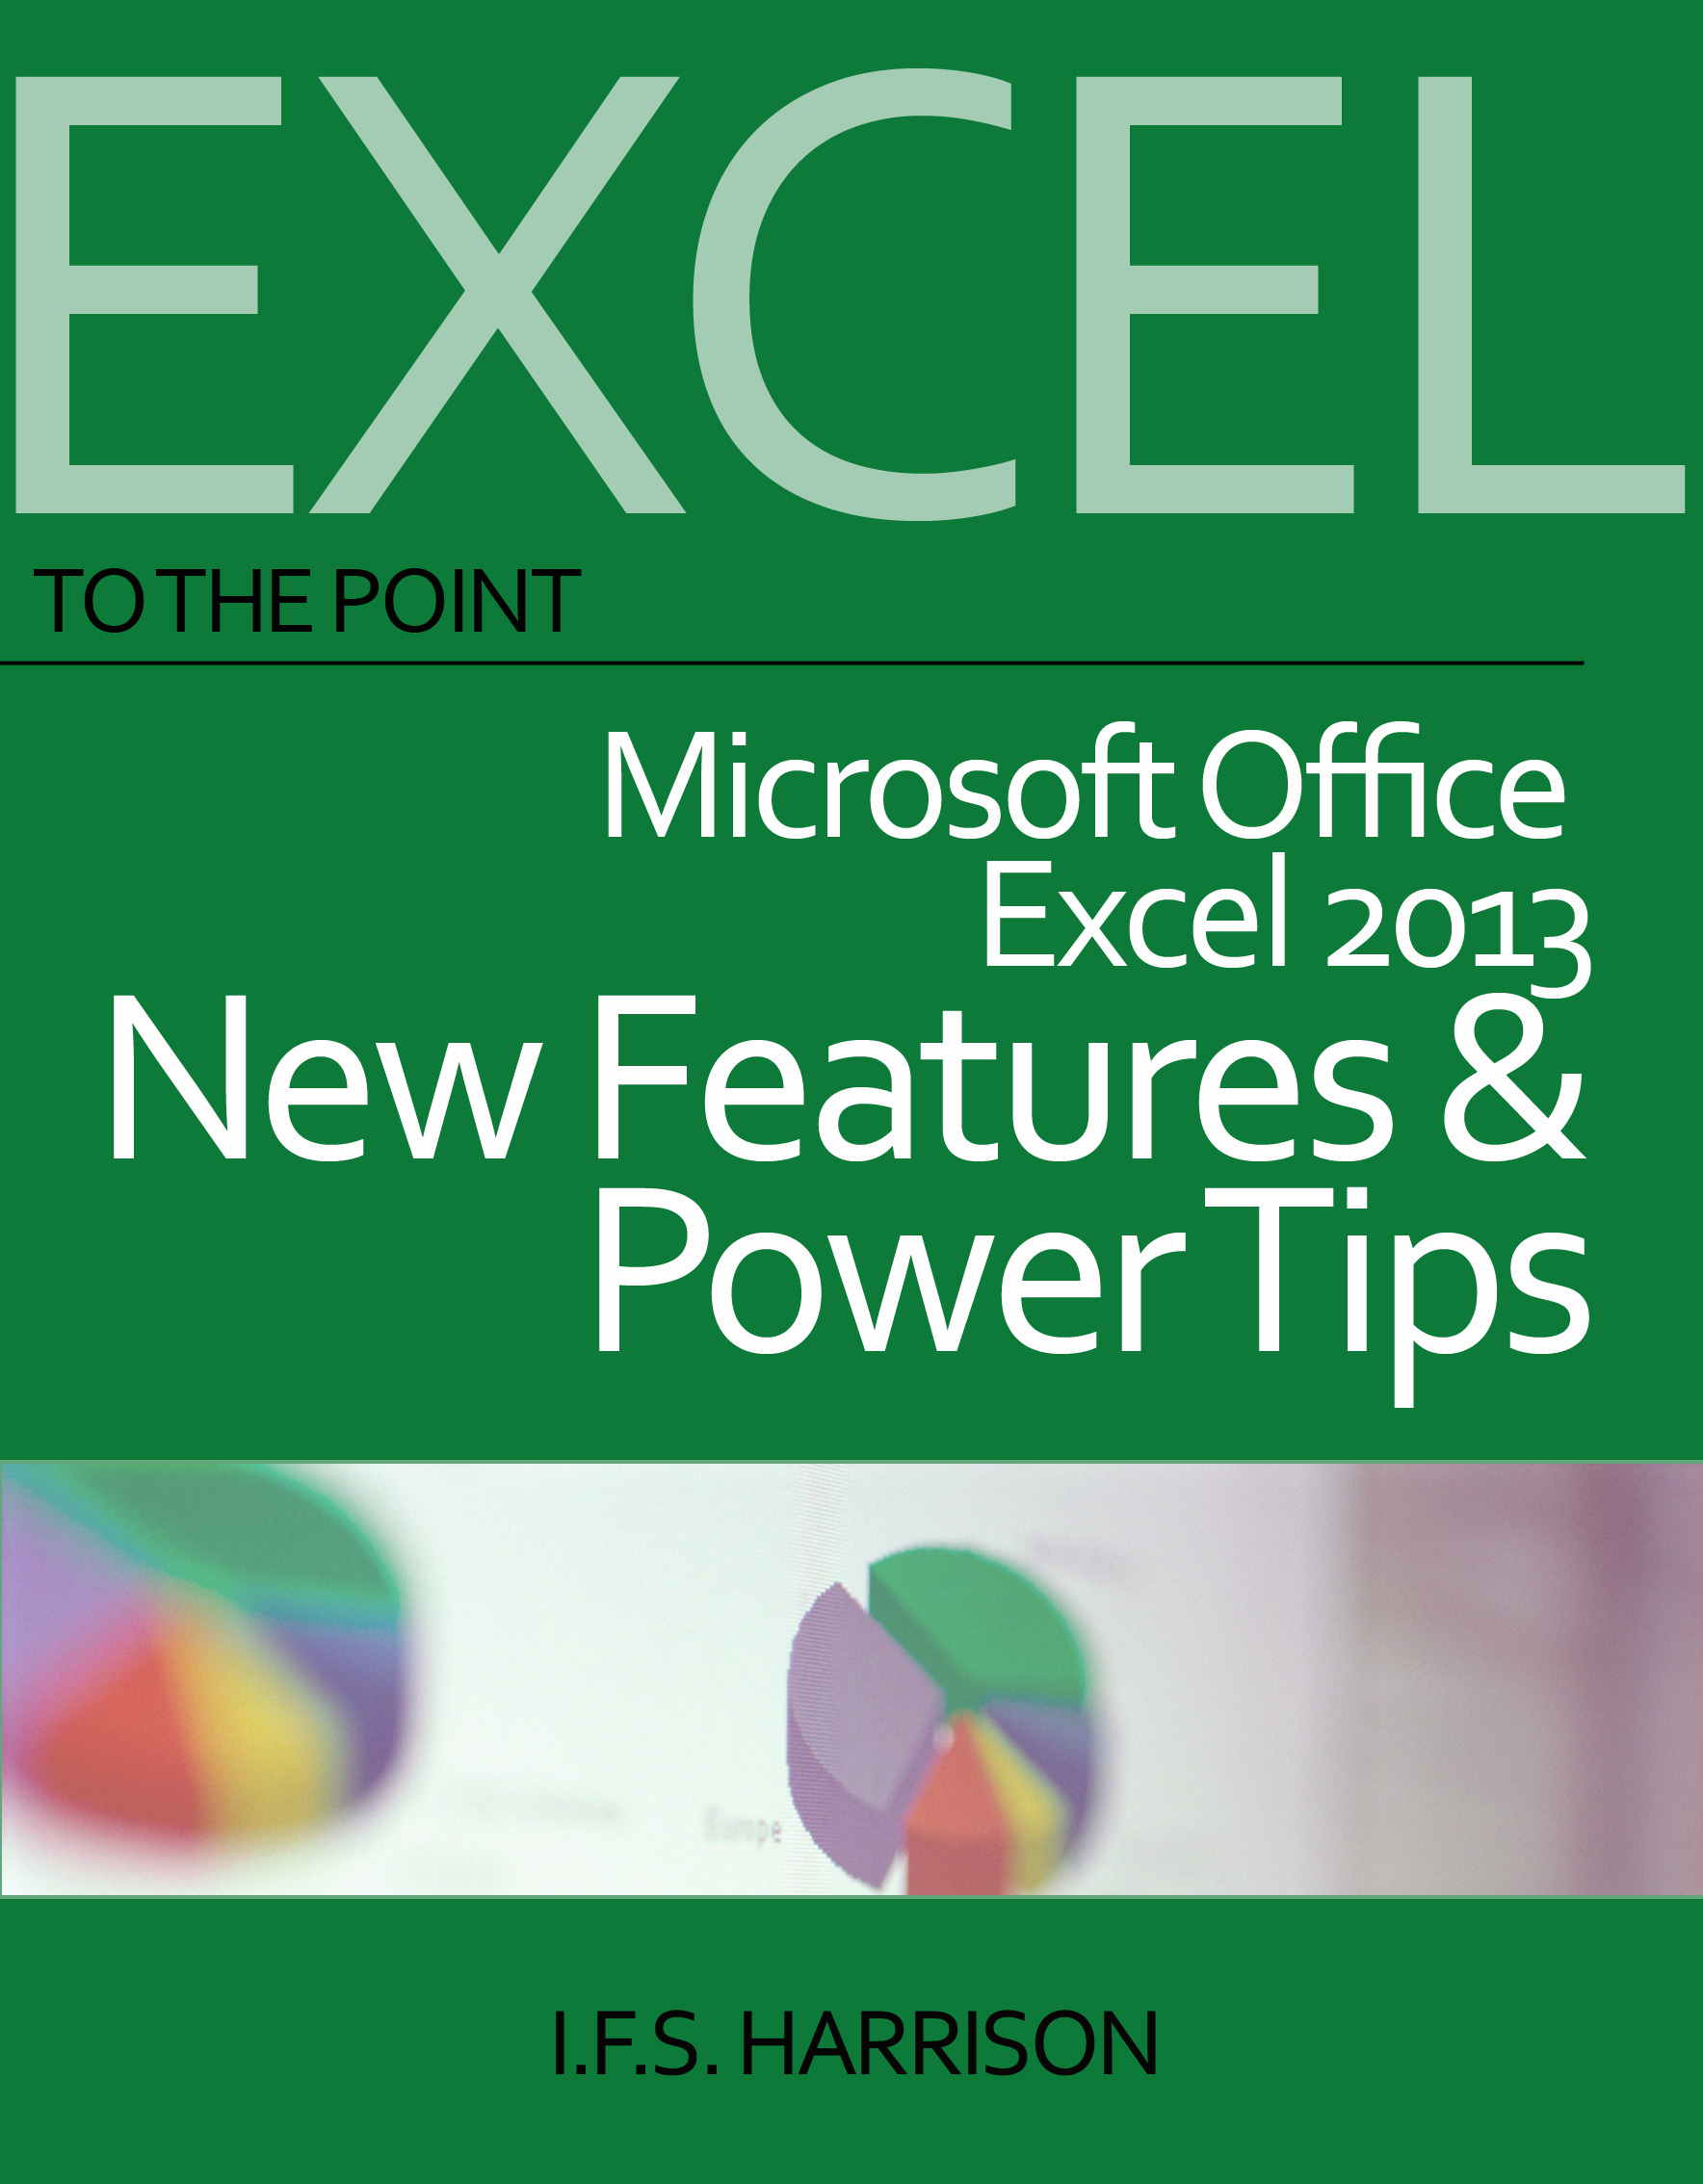 To The Point… Microsoft Office Excel 2013 New Features and Power Tips